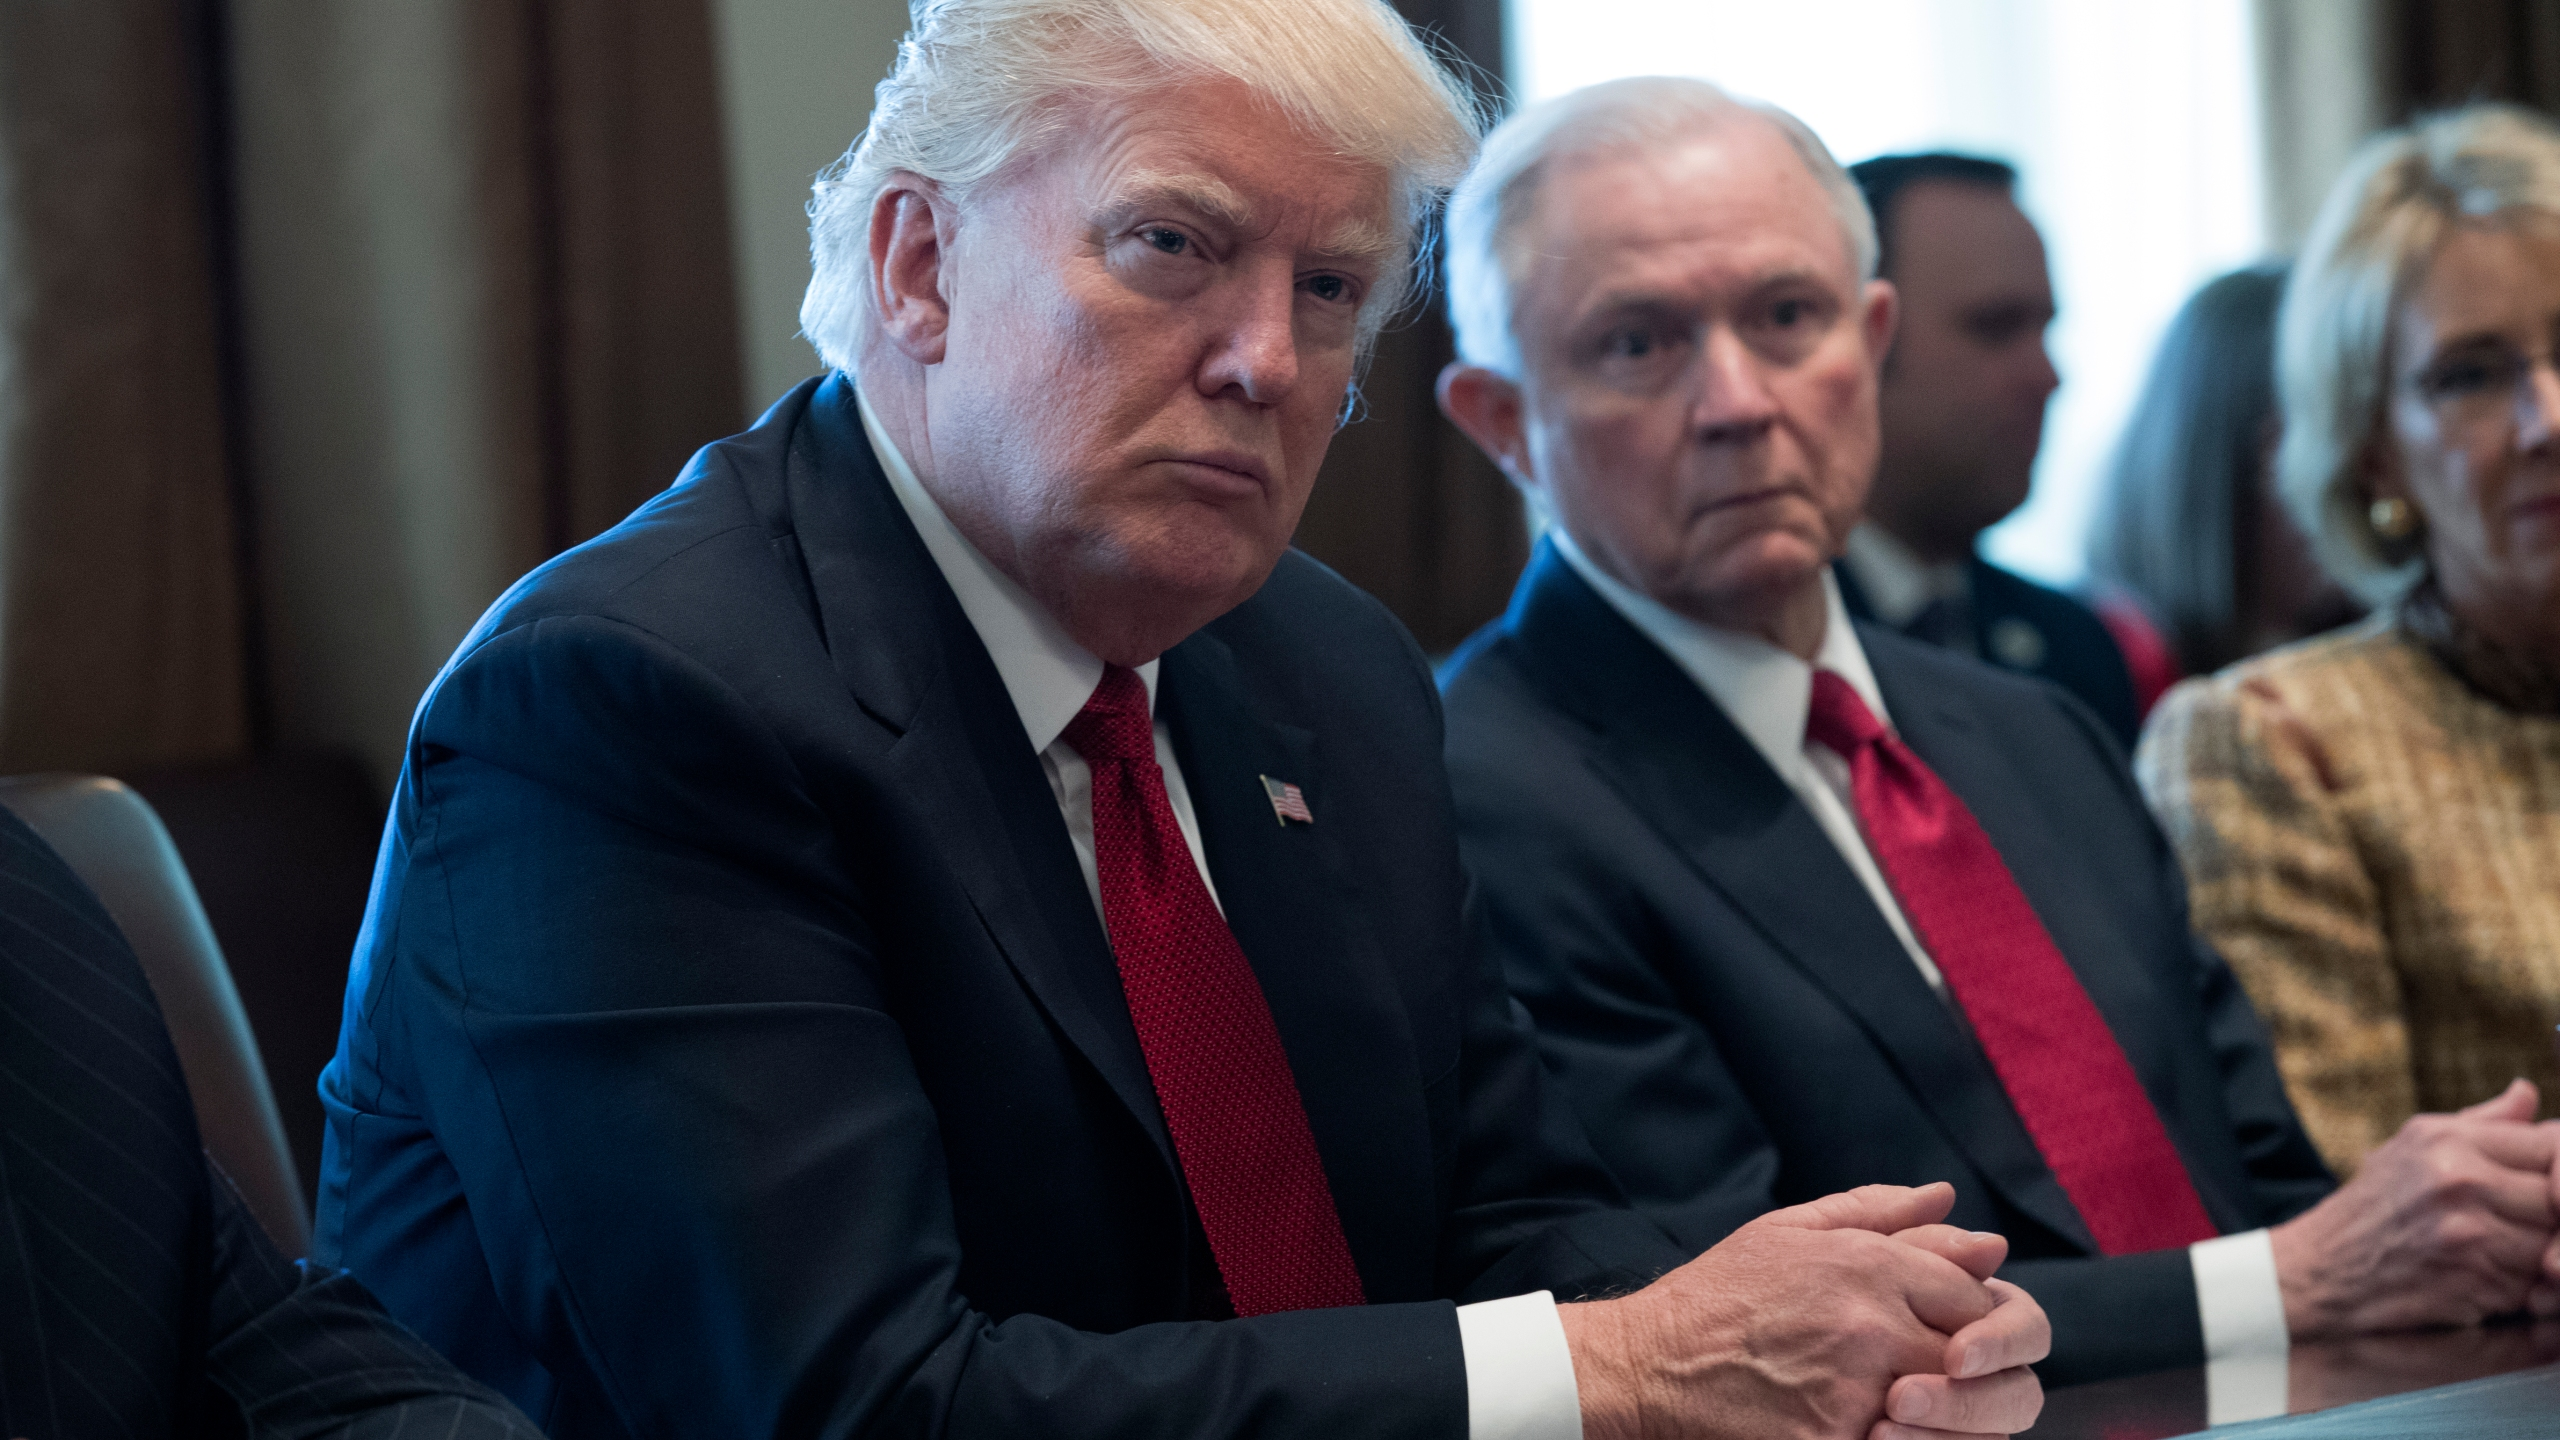 Donald Trump and Jeff Sessions attend a panel discussion at the White House on March 29, 2017 in Washington, D.C. (Credit: Shawn Thew-Pool/Getty Images)